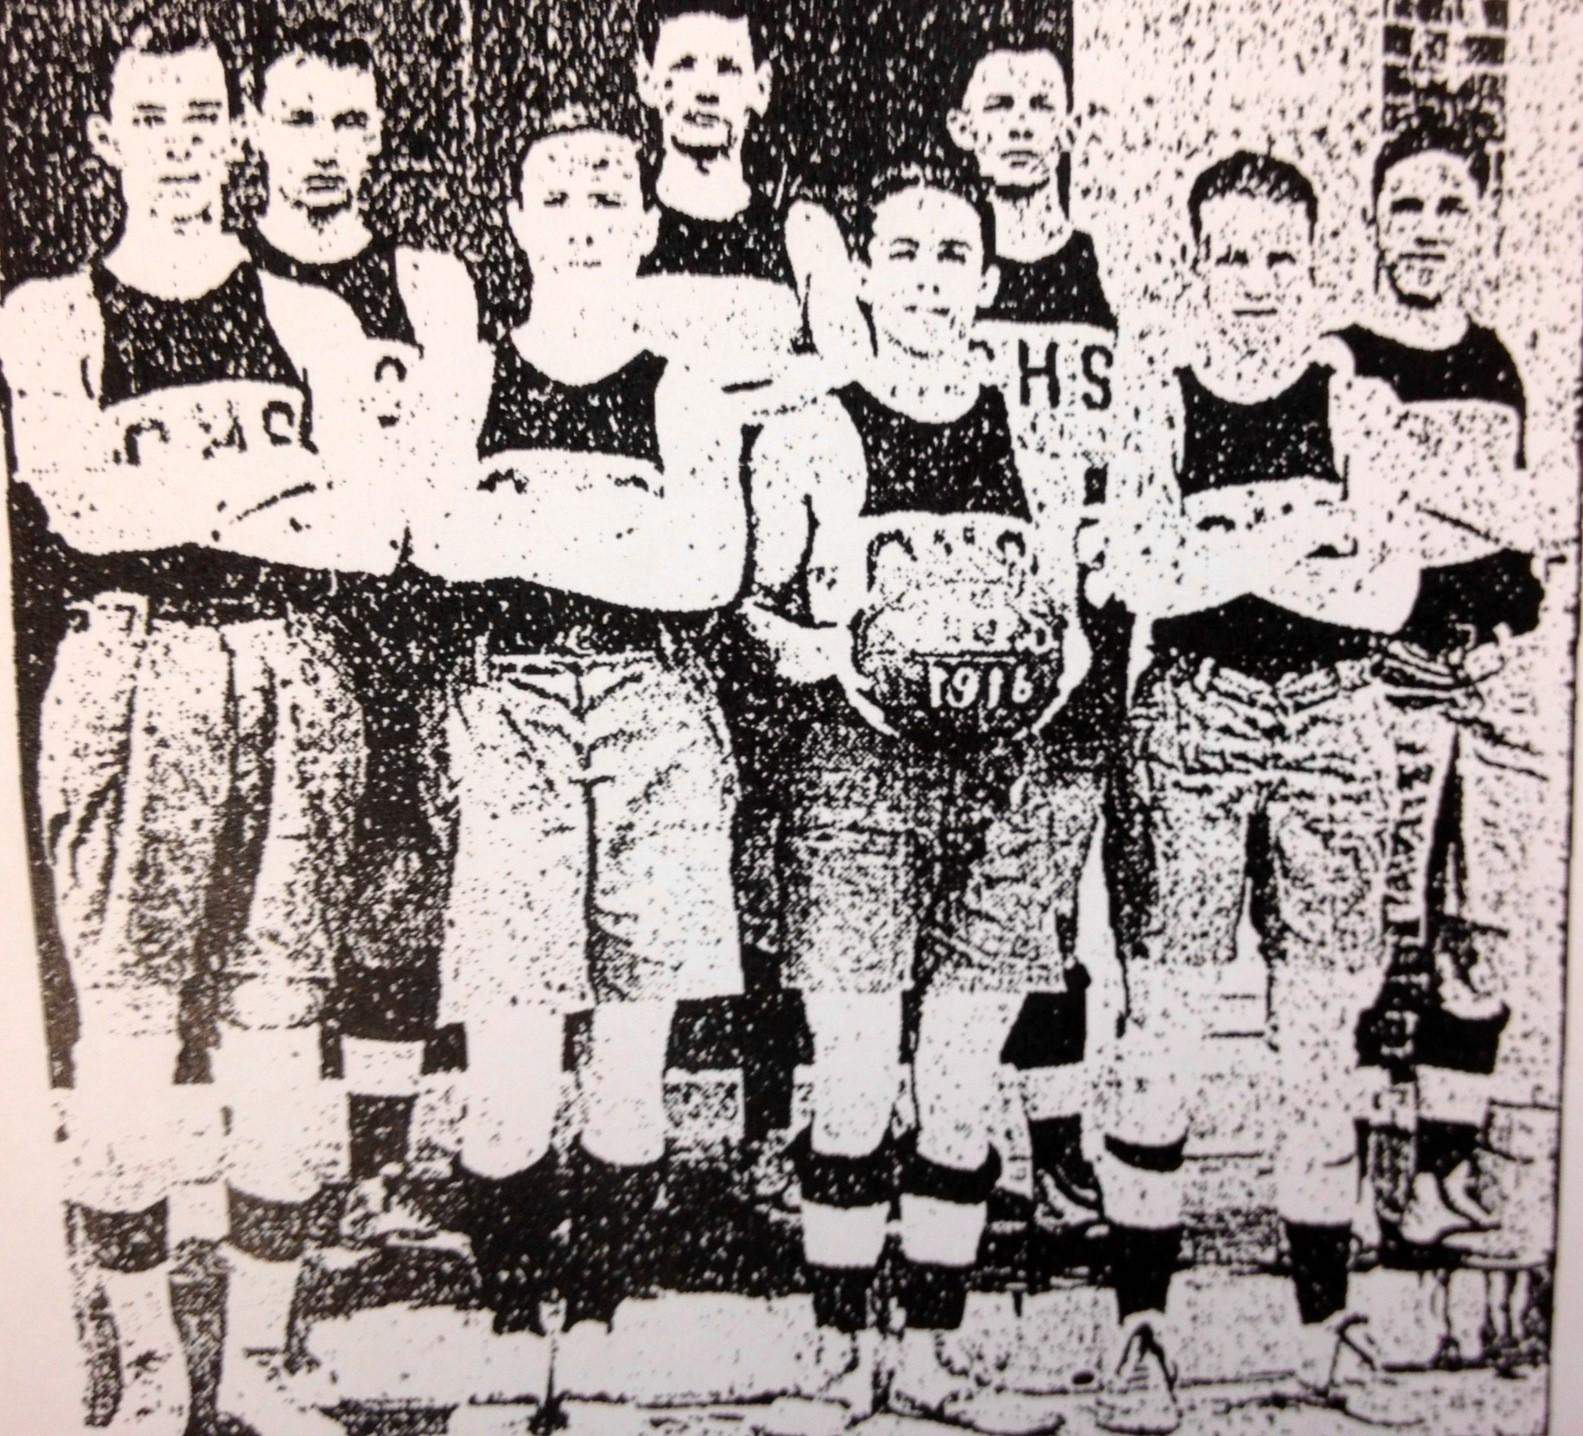 Back Row: Moseley, manager and substitute; Turner, substitute; Holmes, right forward; Dickinson, substitute. Front Row: Williams, center; Reynolds, left forward; Carter, Captain, right guard; Dean, left forward